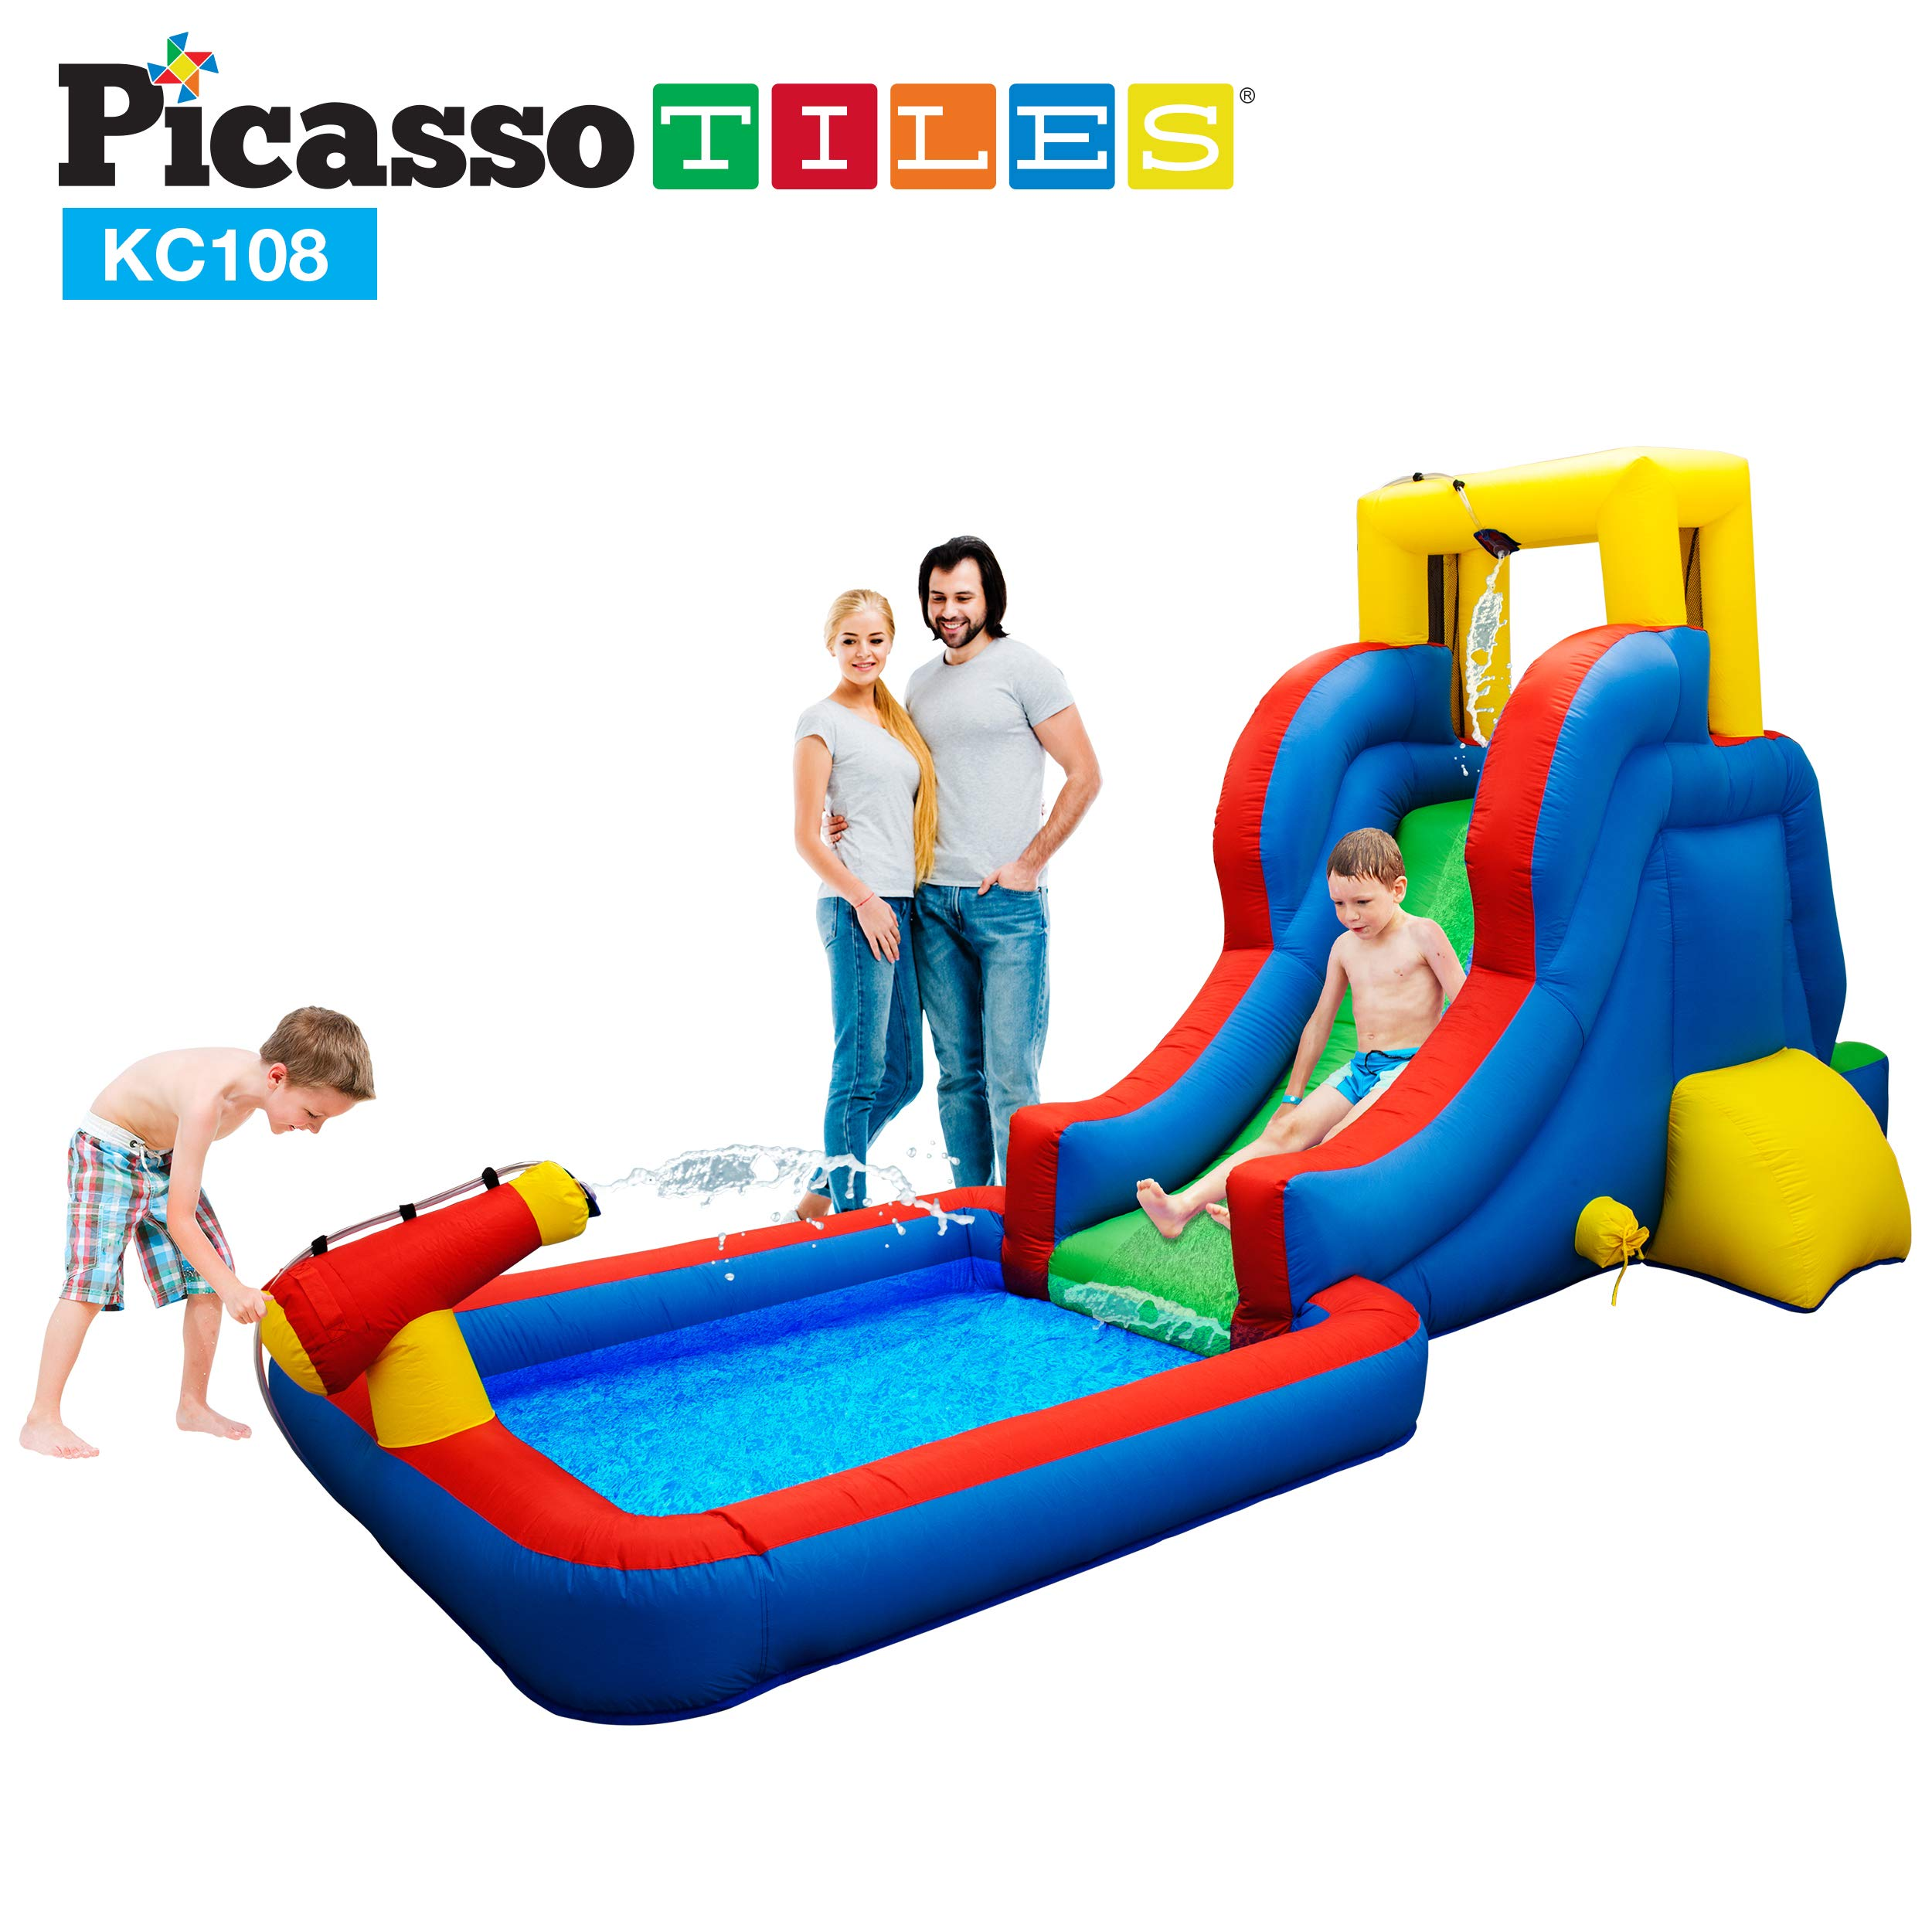 PicassoTiles KC108 Water Slide Park Inflatable Bouncing House w/ Pool Area (Splash Zone), Climbing Wall, Shower Head Sprays Mounts, Water Cannon Mount and Heavy Duty GFCI ETL Certified 385W Blower by PicassoTiles